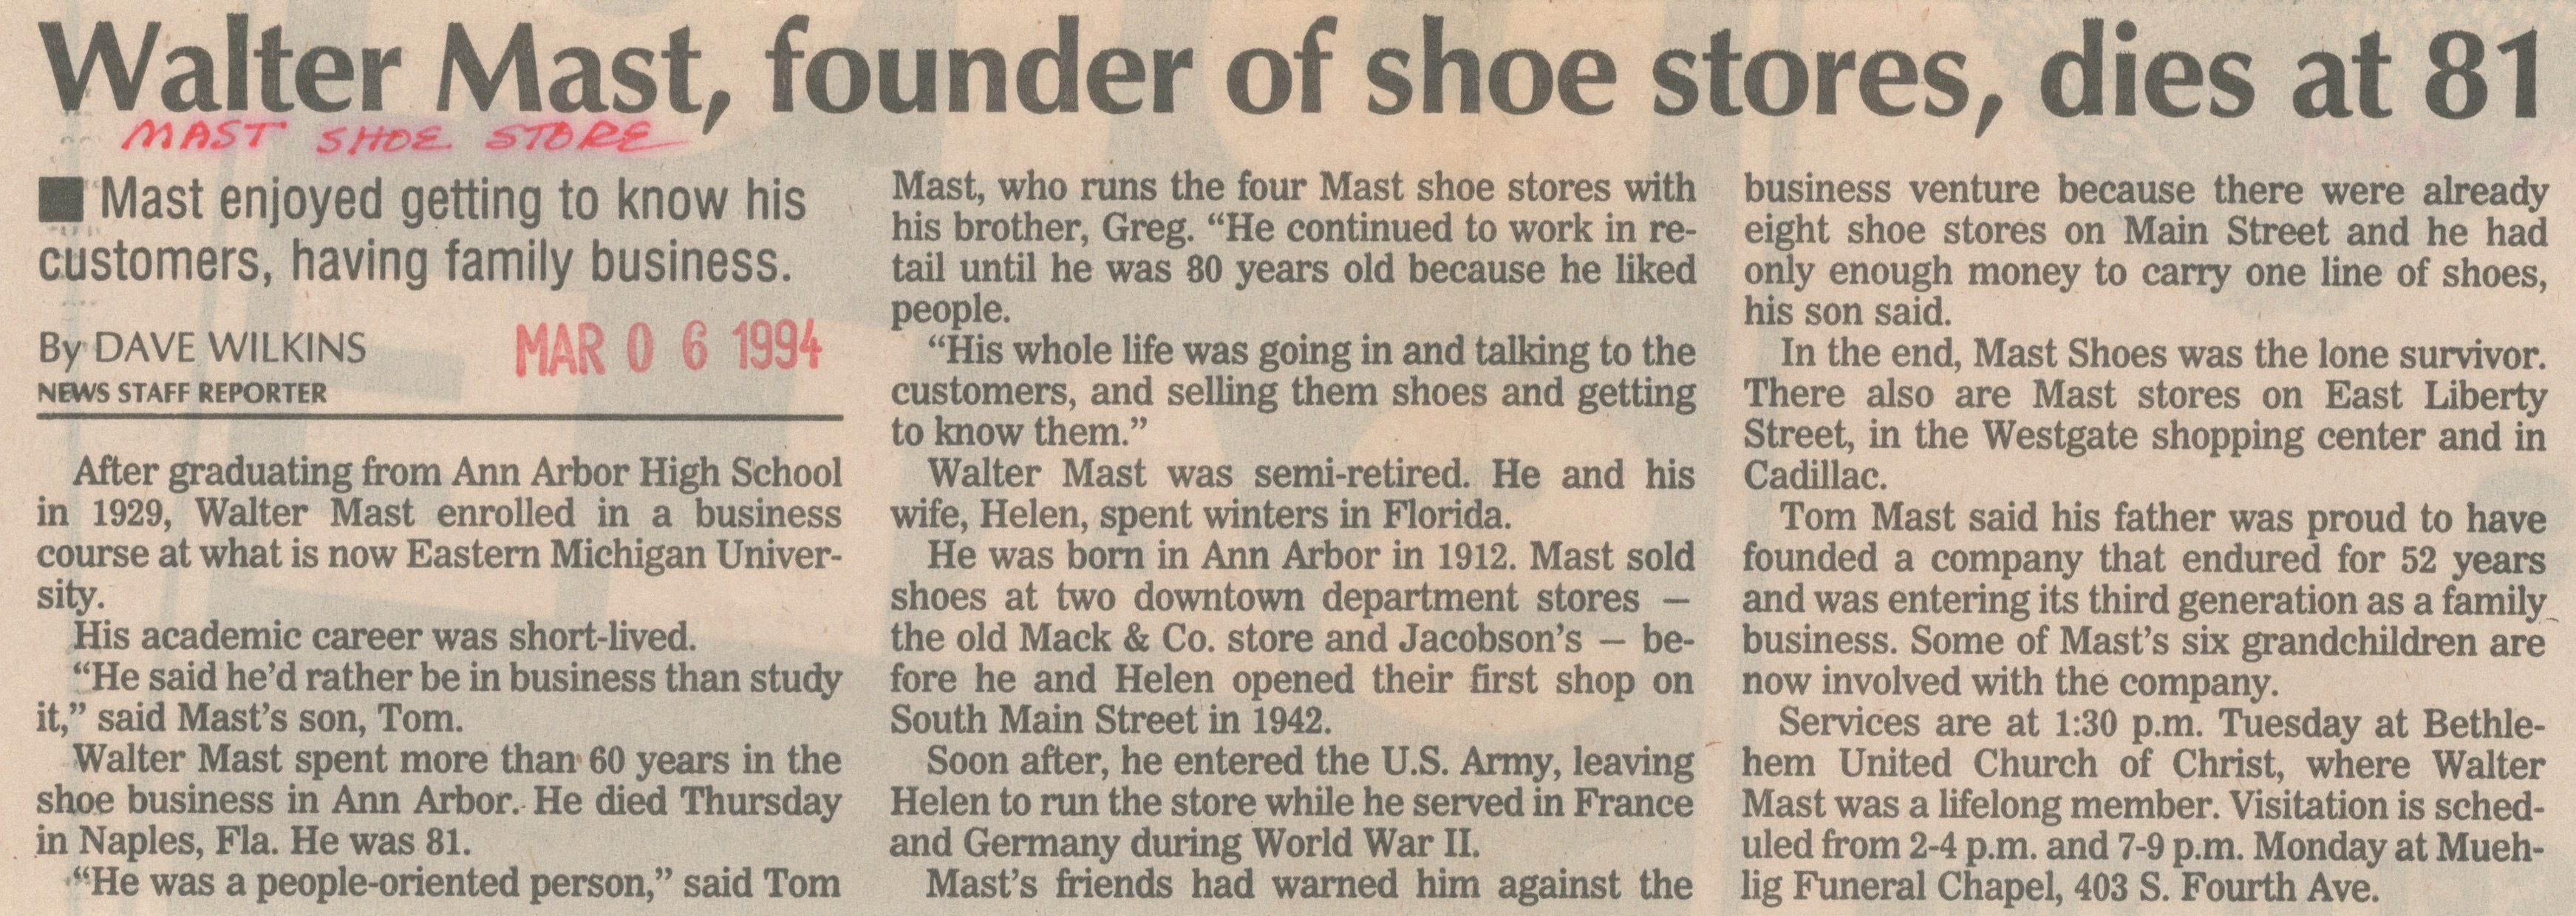 Walter Mast, Founder Of Shoe Stores, Dies At 81 image